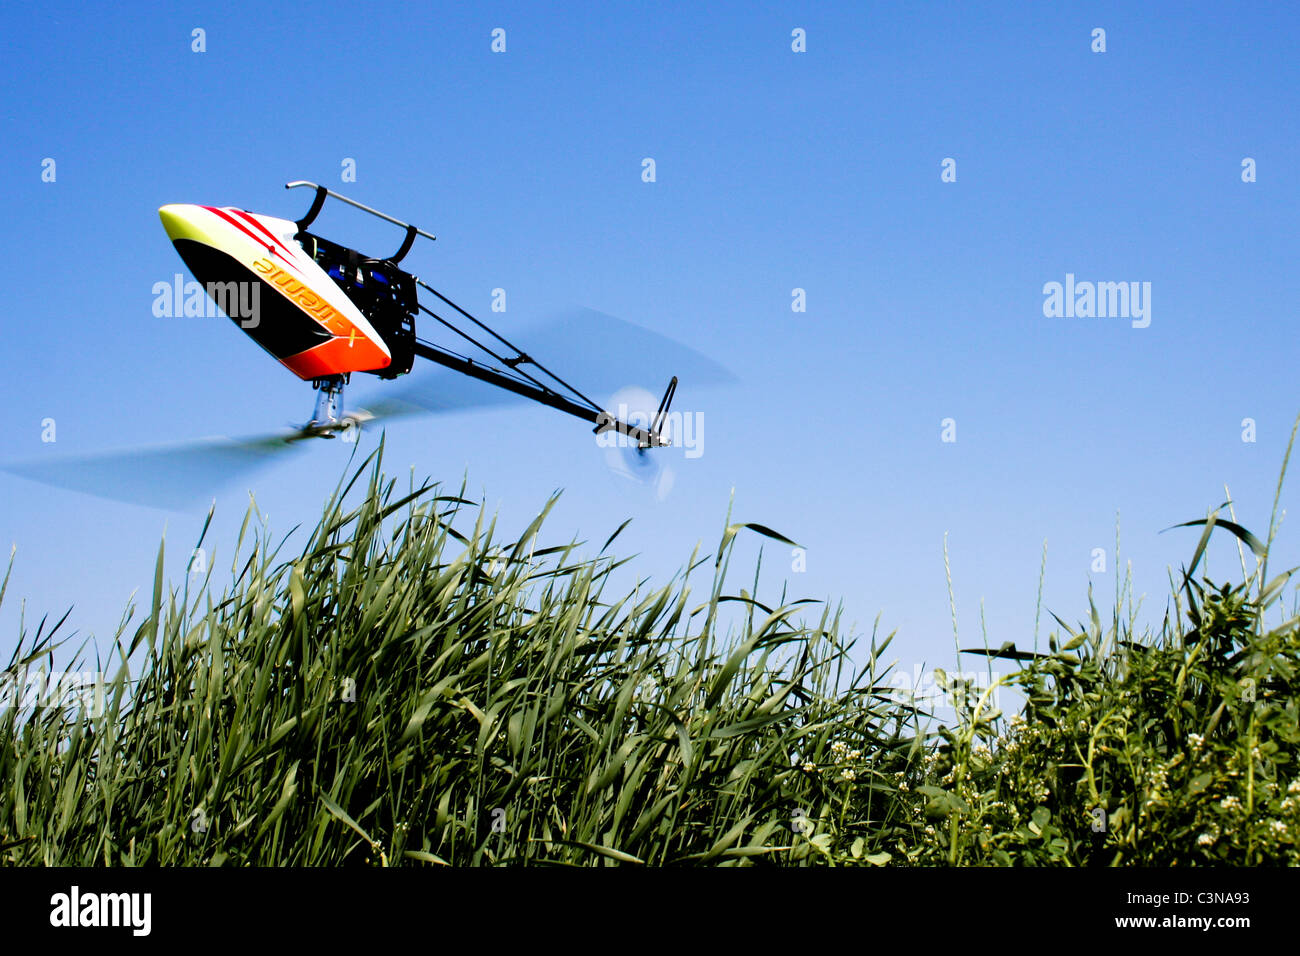 Model helicopter flies inverted over long grass. - Stock Image